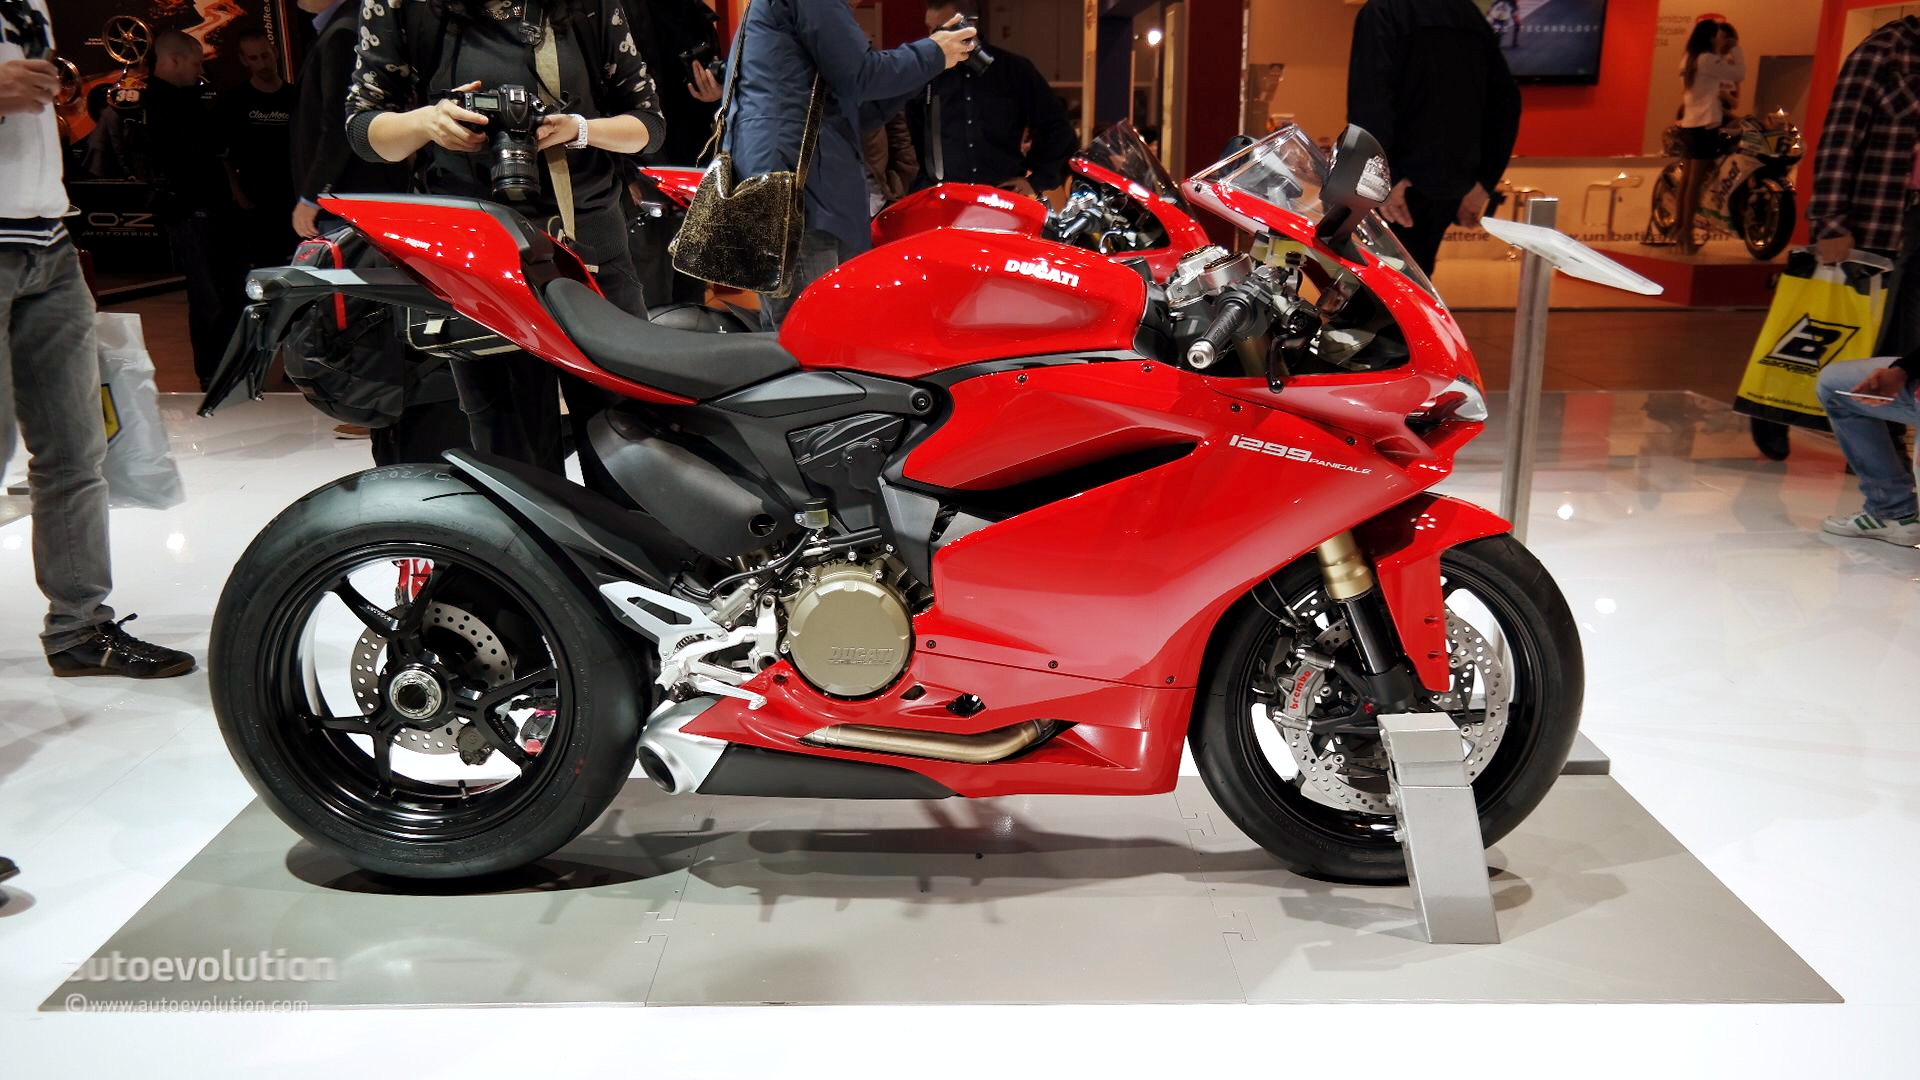 2015 ducati 1299 panigale s unveiled the silicon superbike live photos 1920x1080